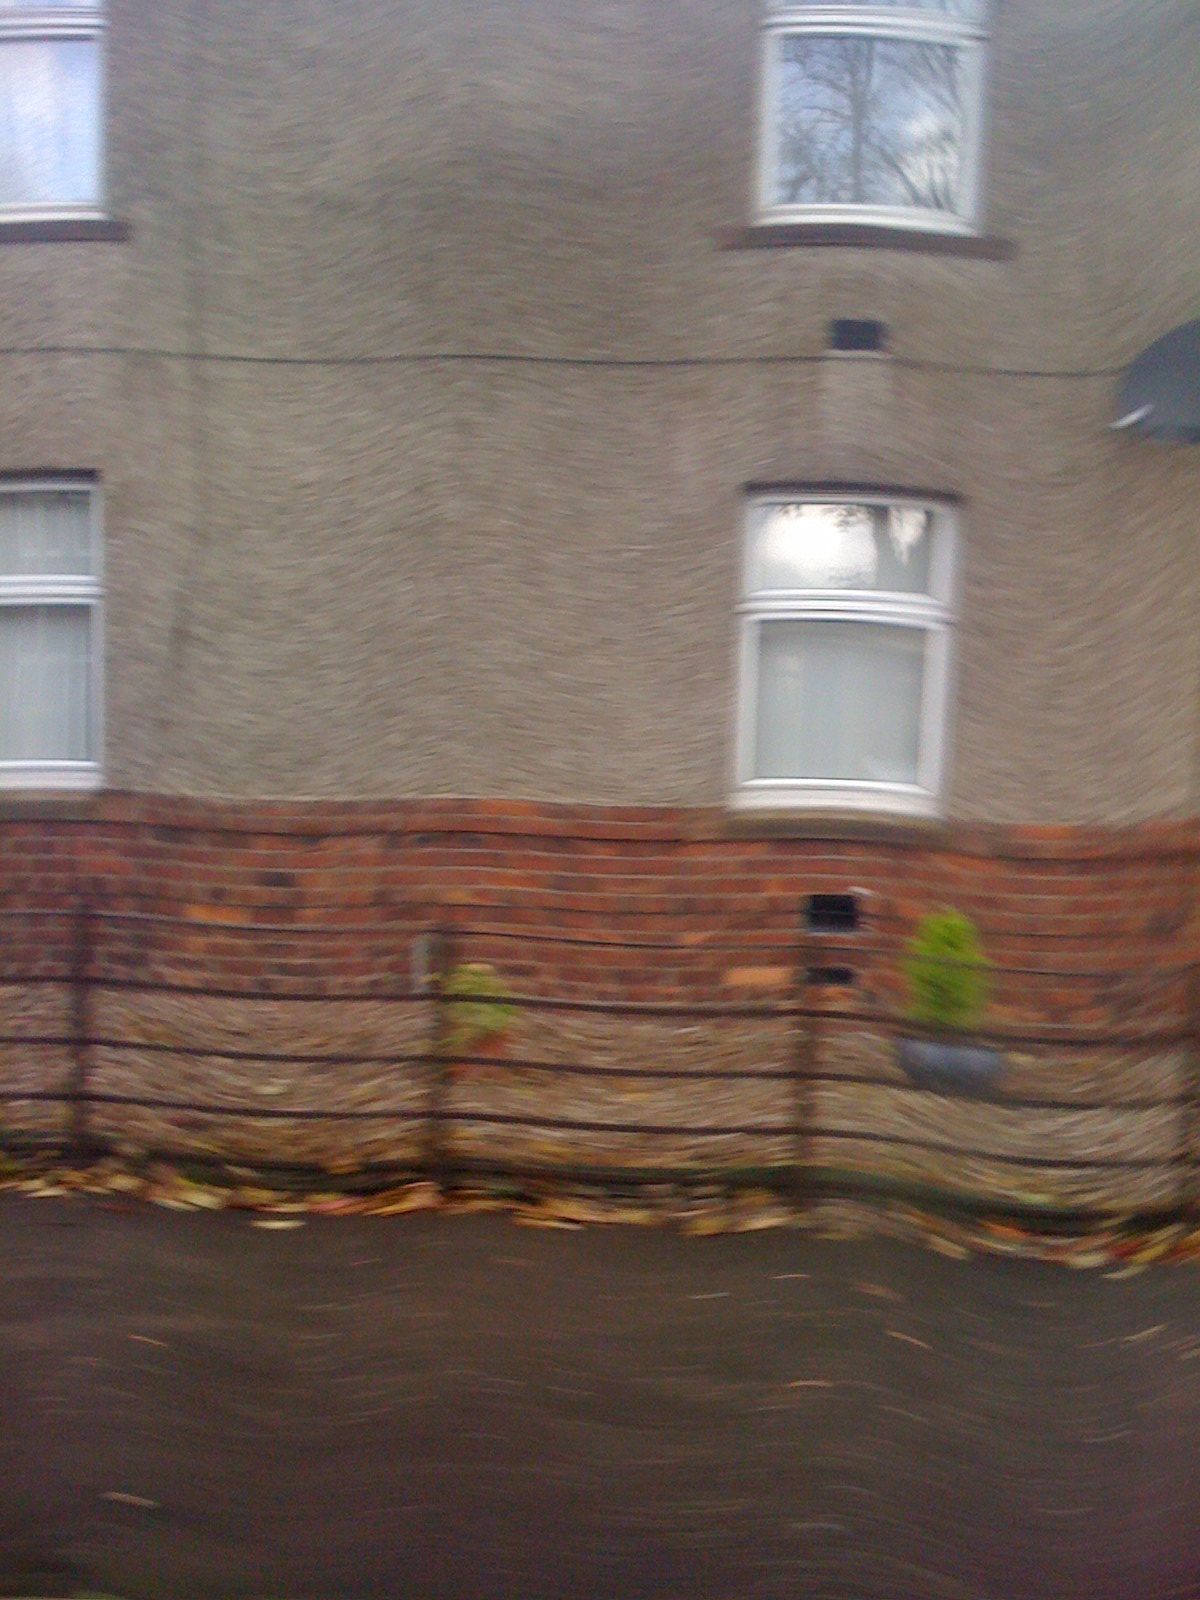 Waving Photo, taken on running bus with iPhone